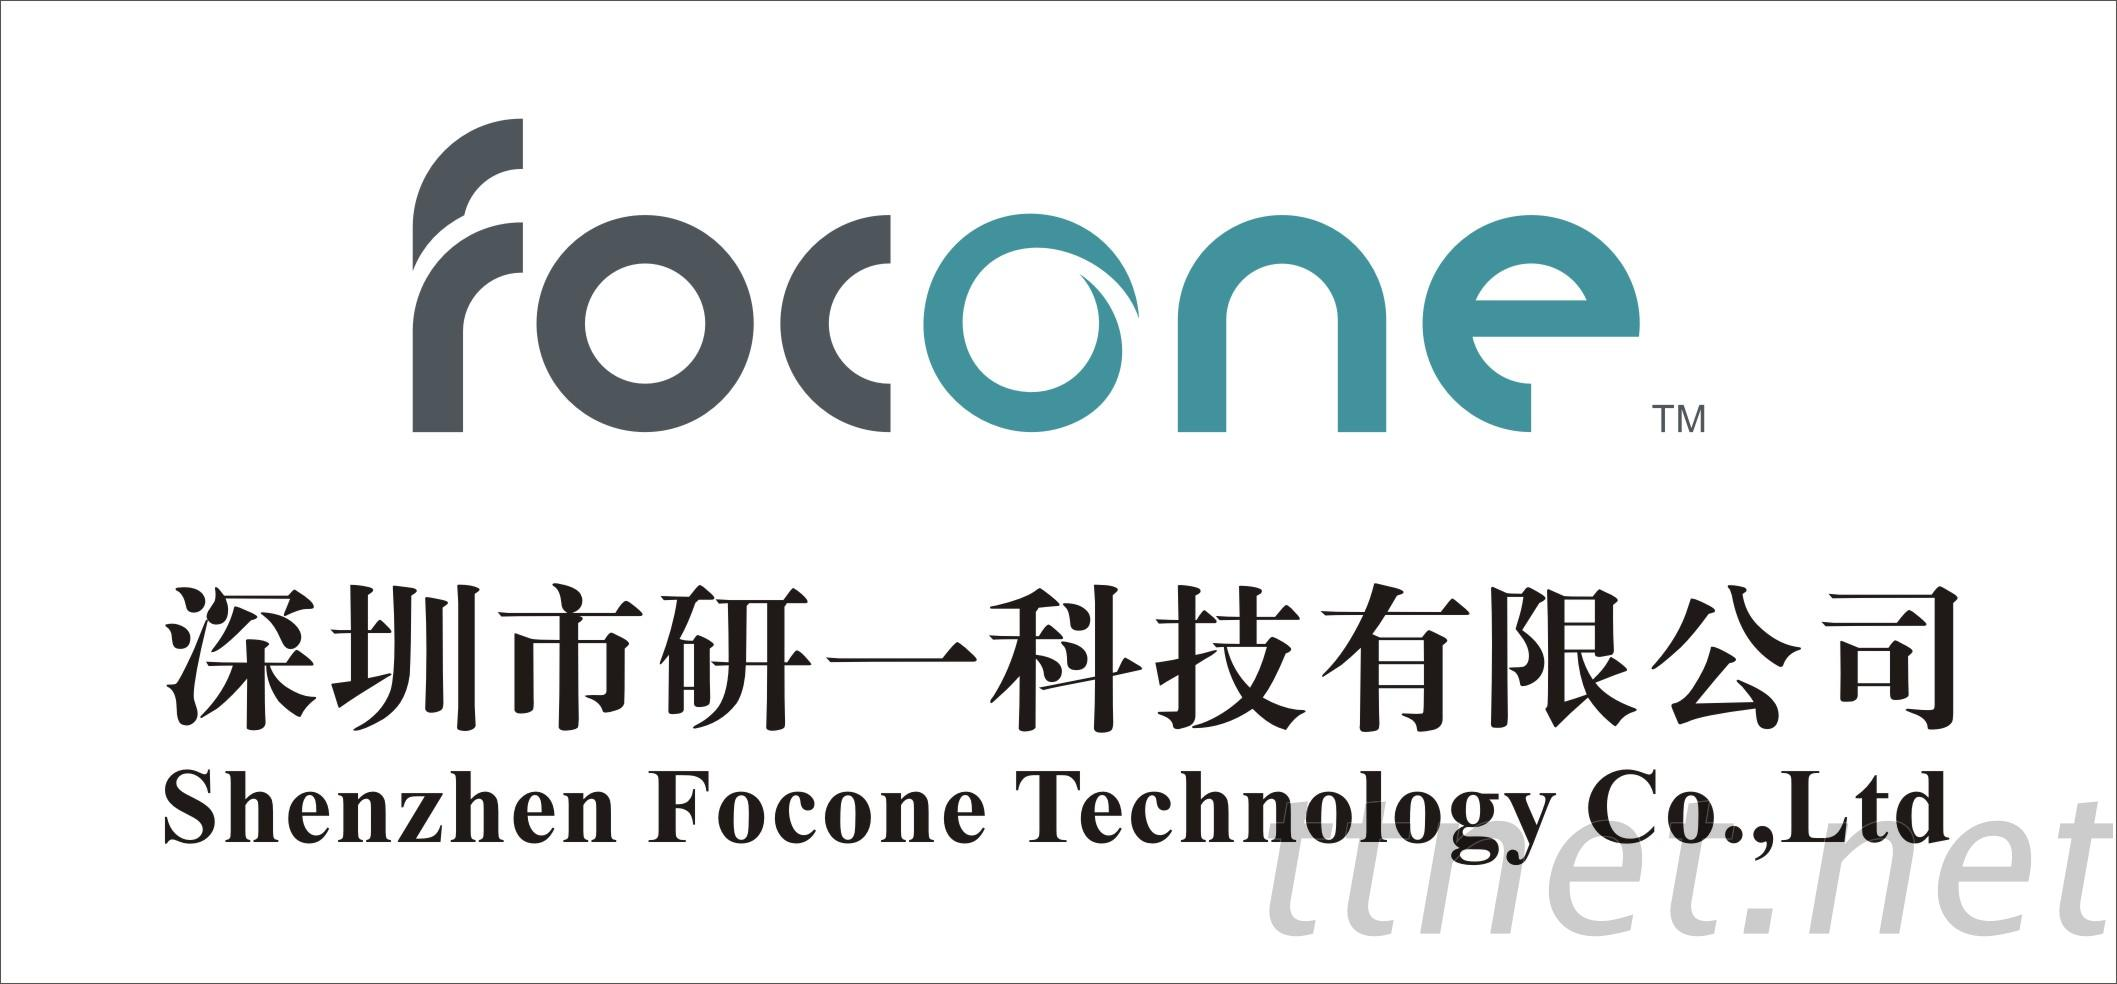 Shenzhen Focone Technology Co., Ltd.